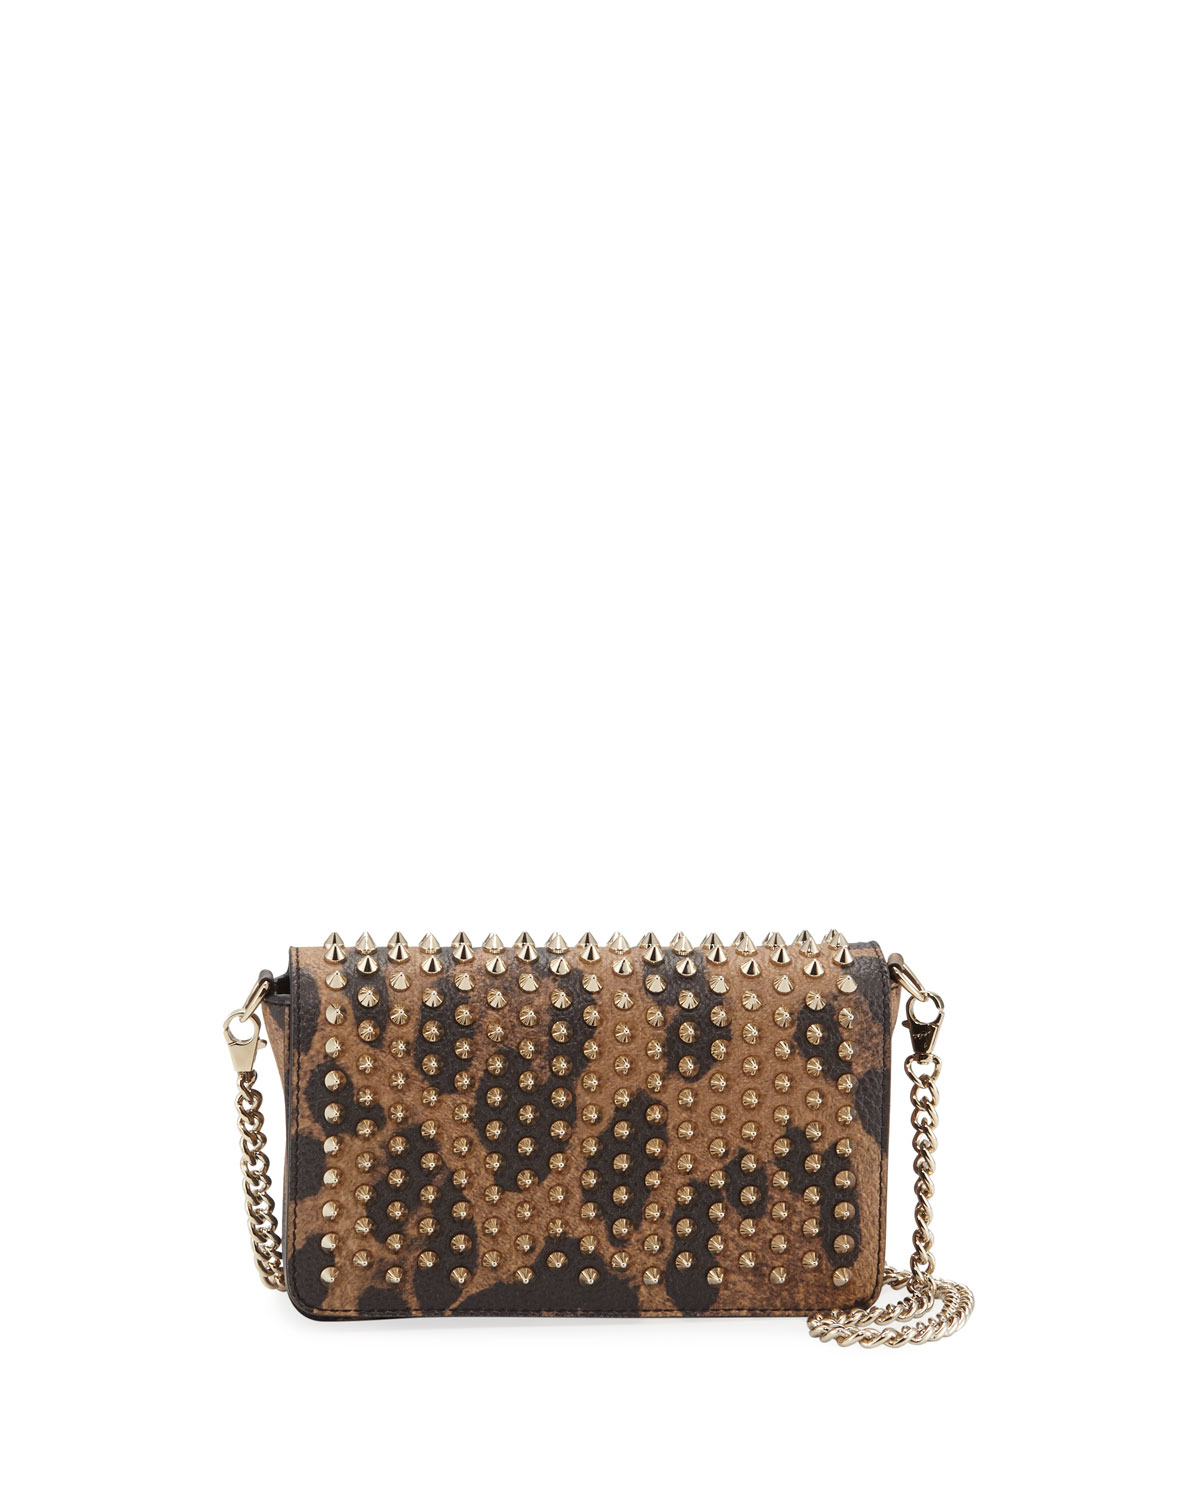 Christian Louboutin ZOOMPOUCH CALF EMPIRE SPIKES LEOPARD CLUTCH BAG